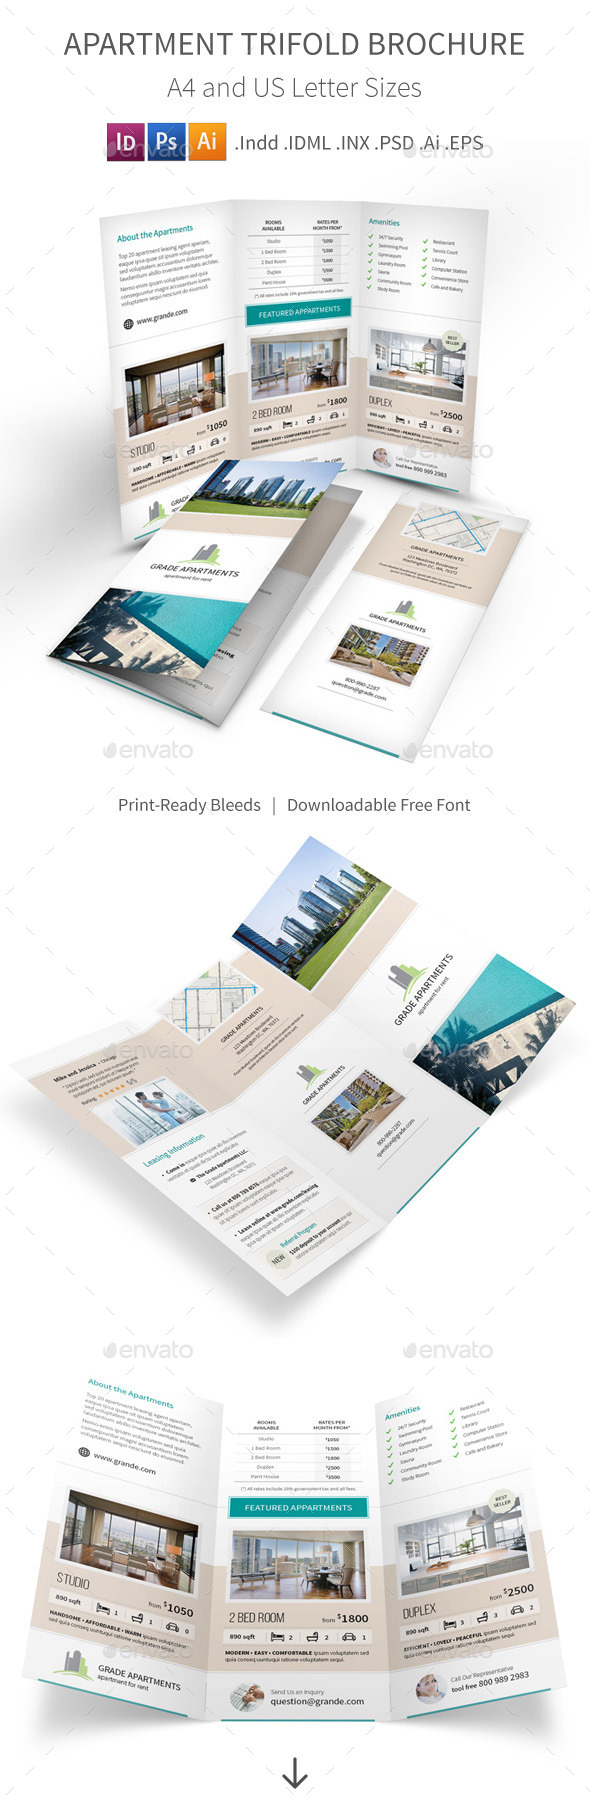 Apartment Real Estate Trifold Brochure - Informational Brochures